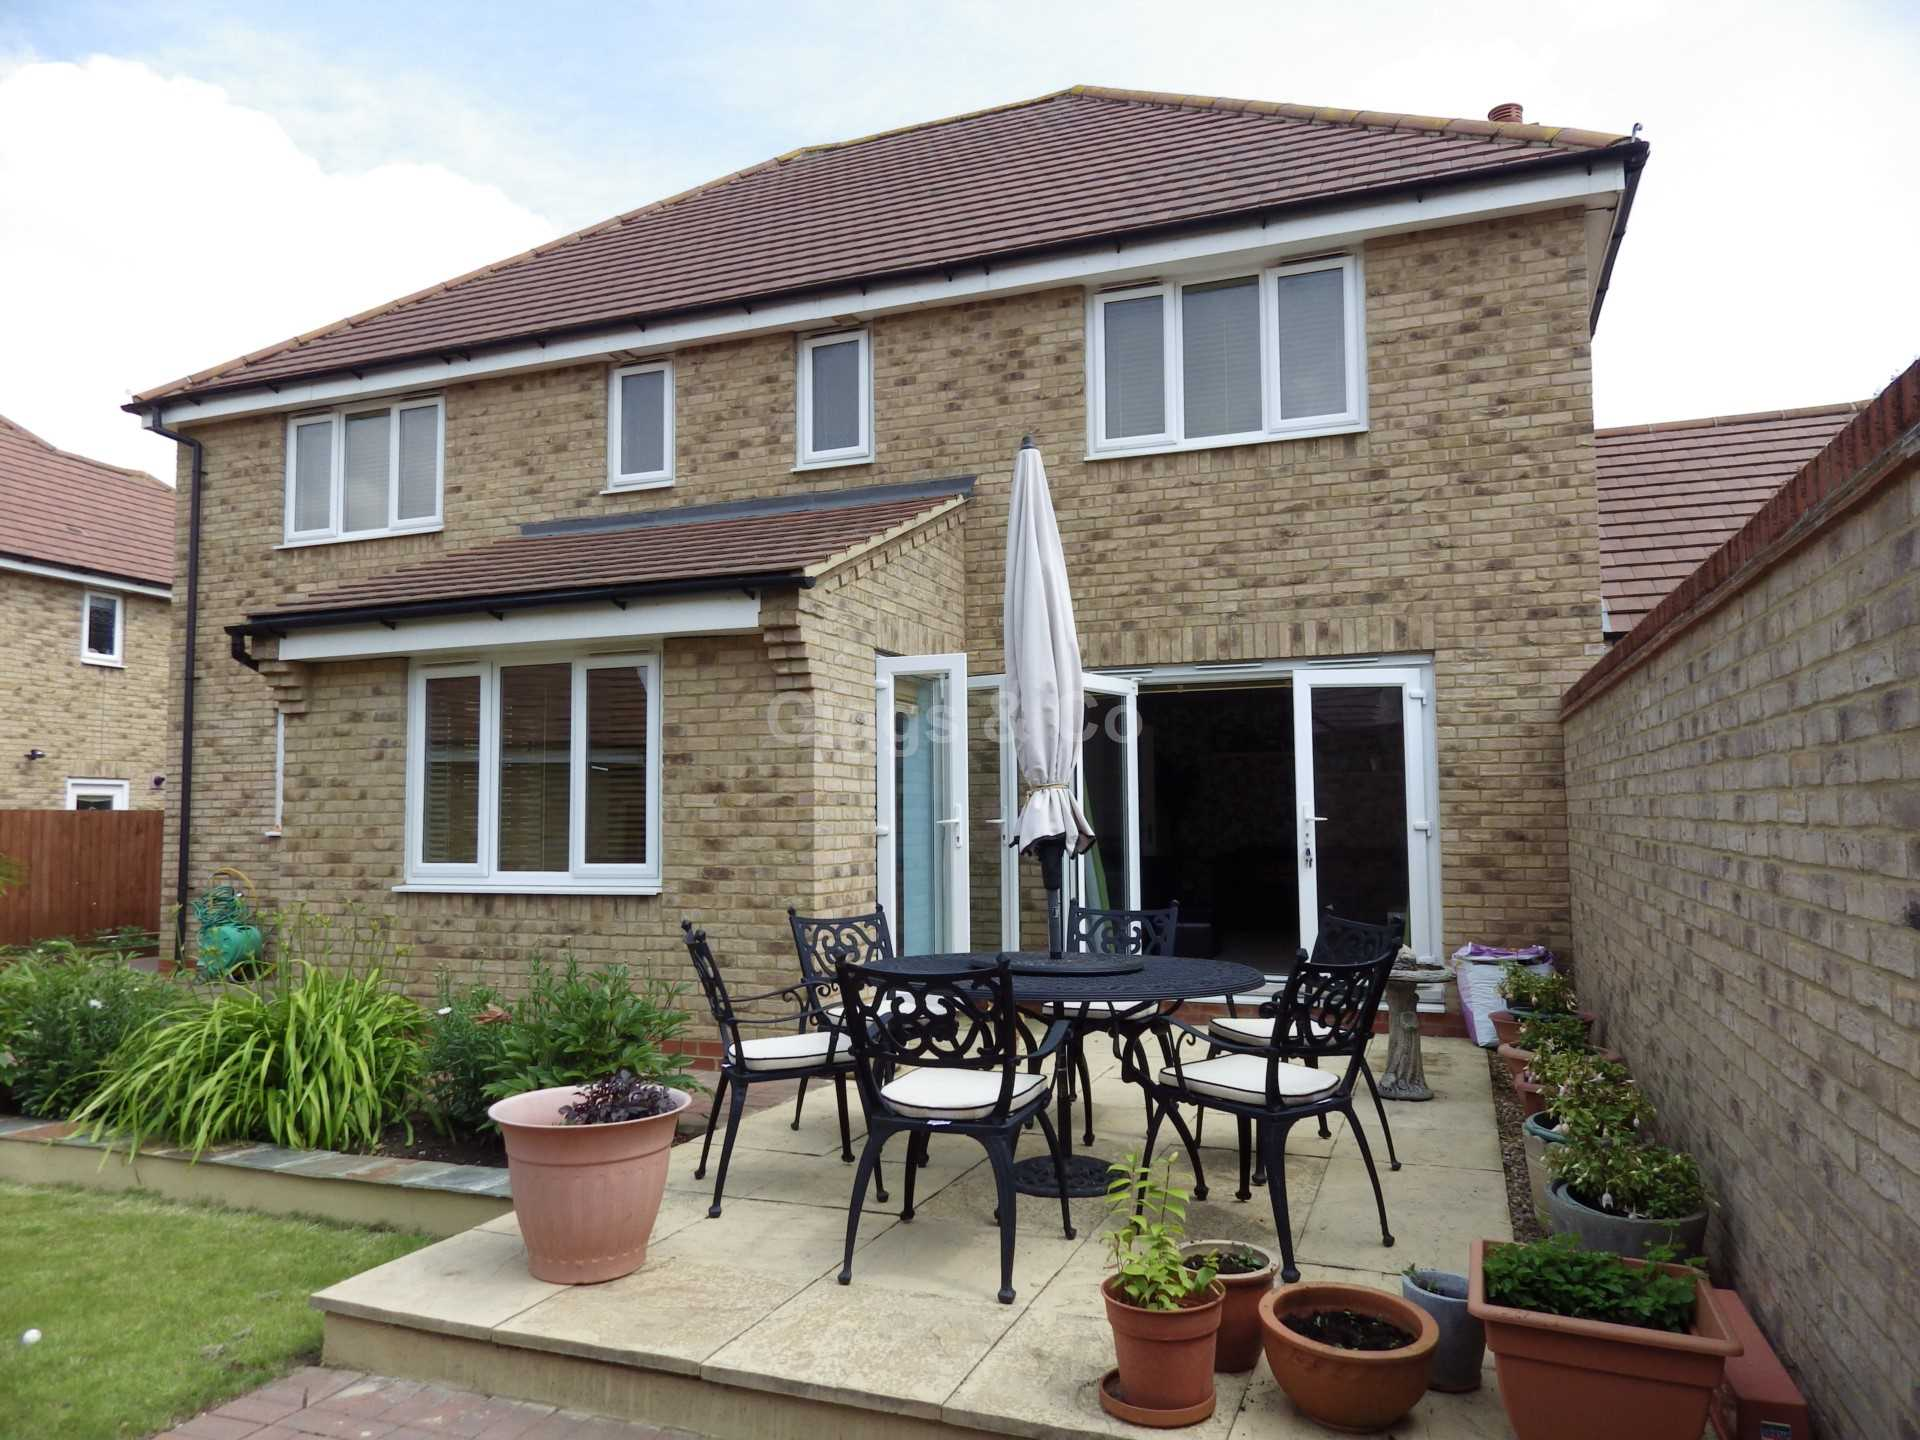 5 bed detached house to rent in Stone Hill, St Neots - Property Image 1